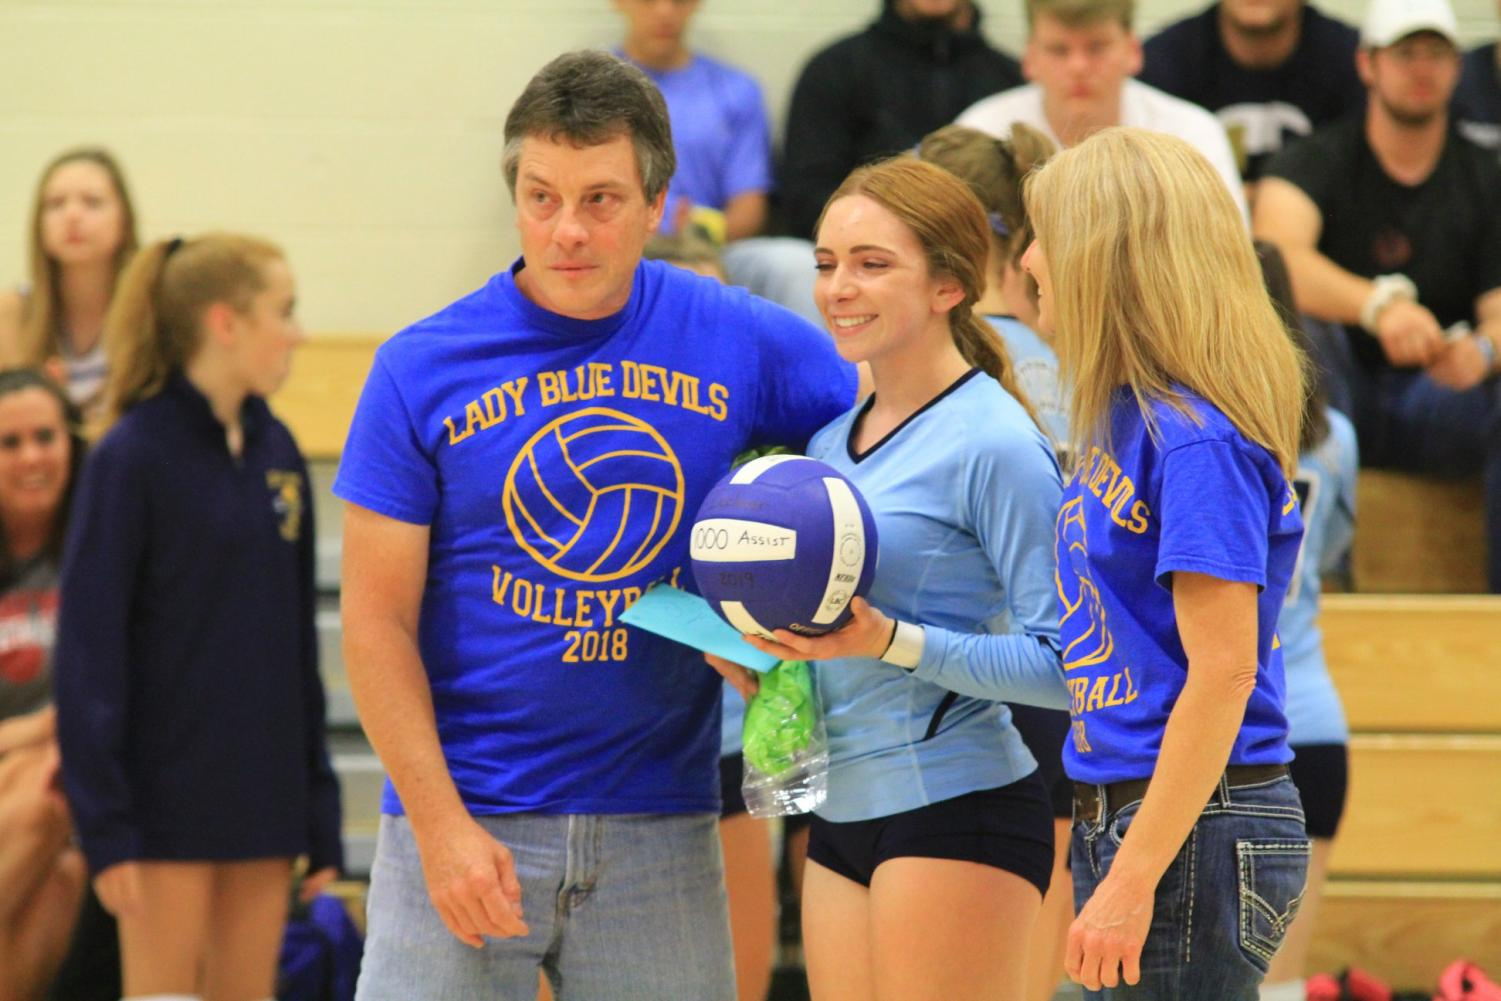 Sydney Lechner reached a career milestone against Glendale with 1,000th career assist.